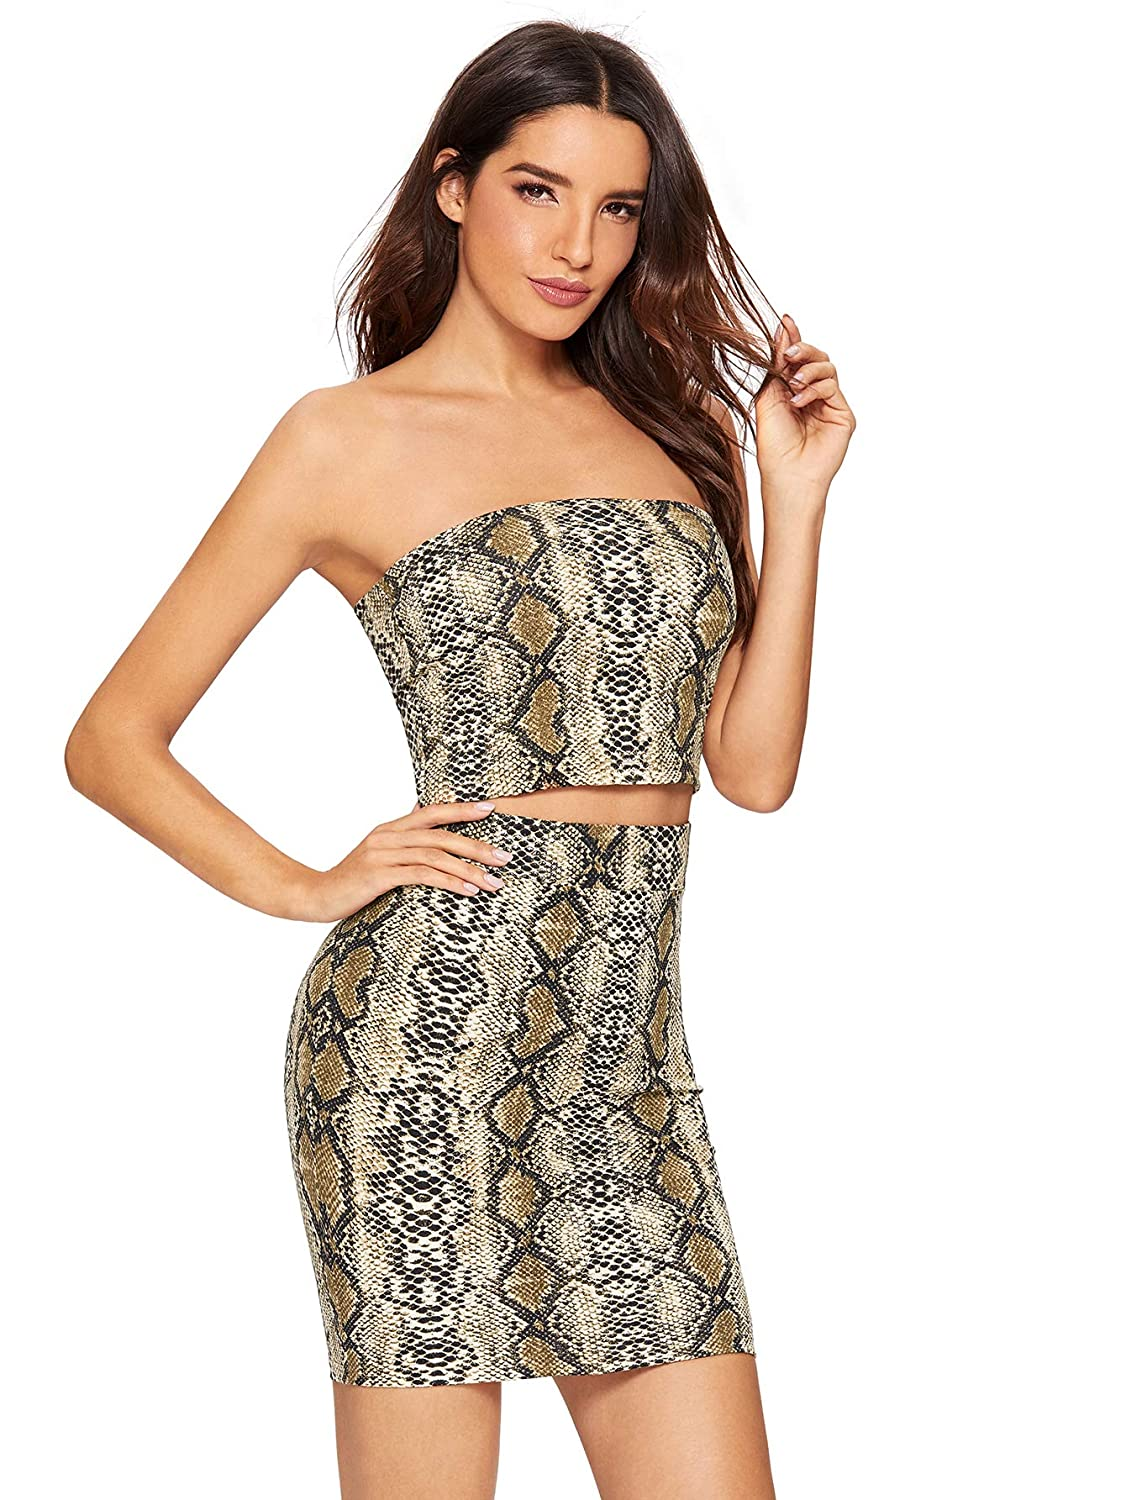 75fb7c71271c Floerns Women's Snake Print Sexy Bandeau Crop Top and Skirt Two Piece Set  at Amazon Women's Clothing store: